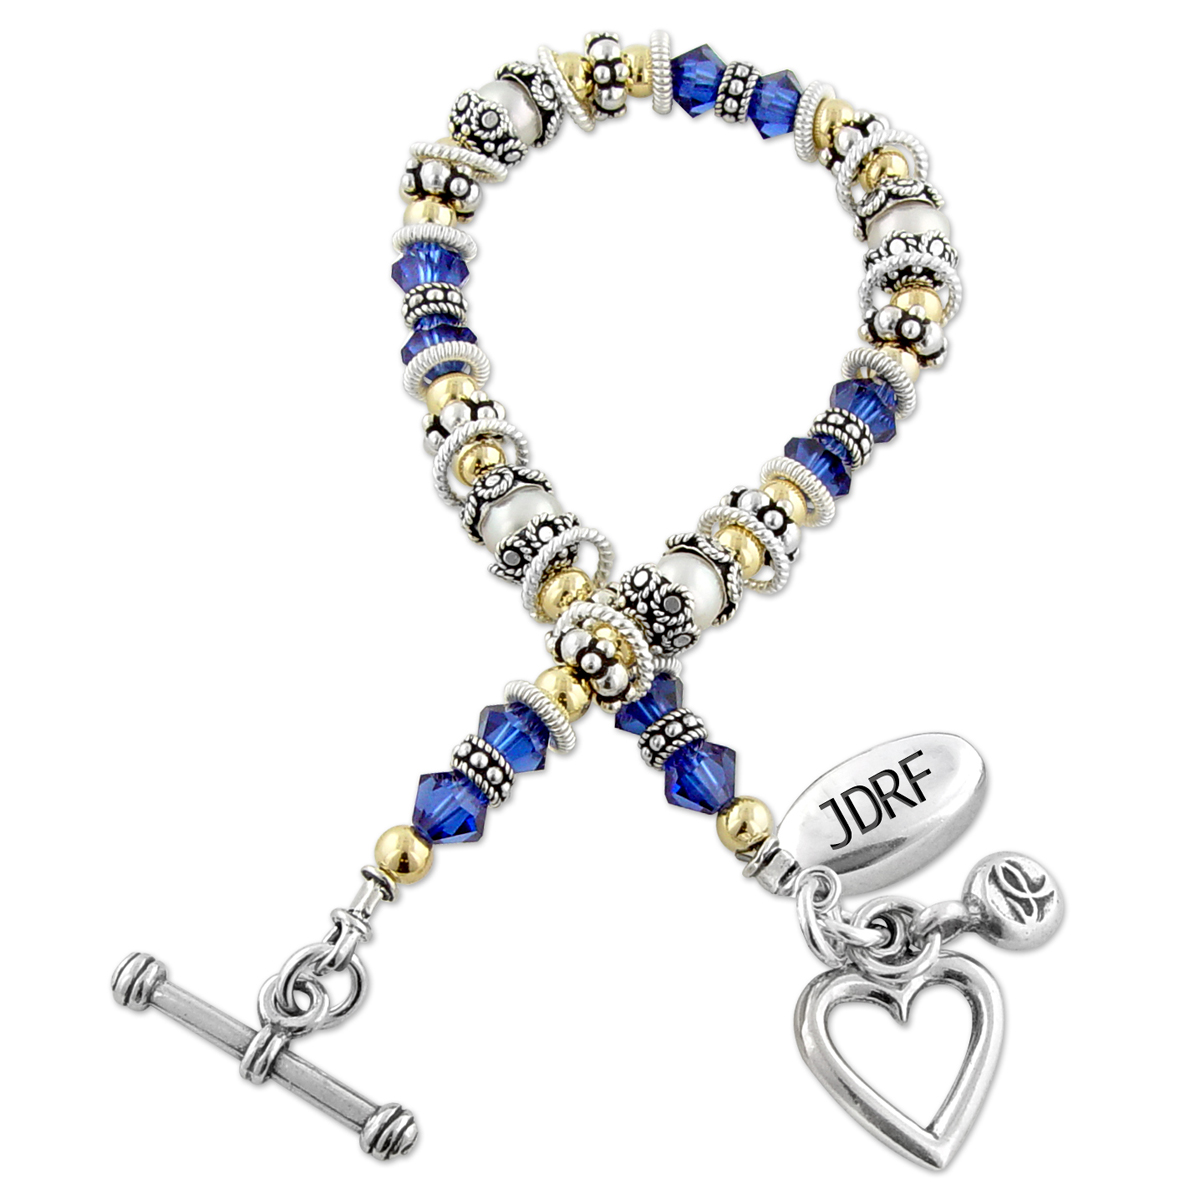 Juvenile Diabetes (JDRF) Awareness Bracelet